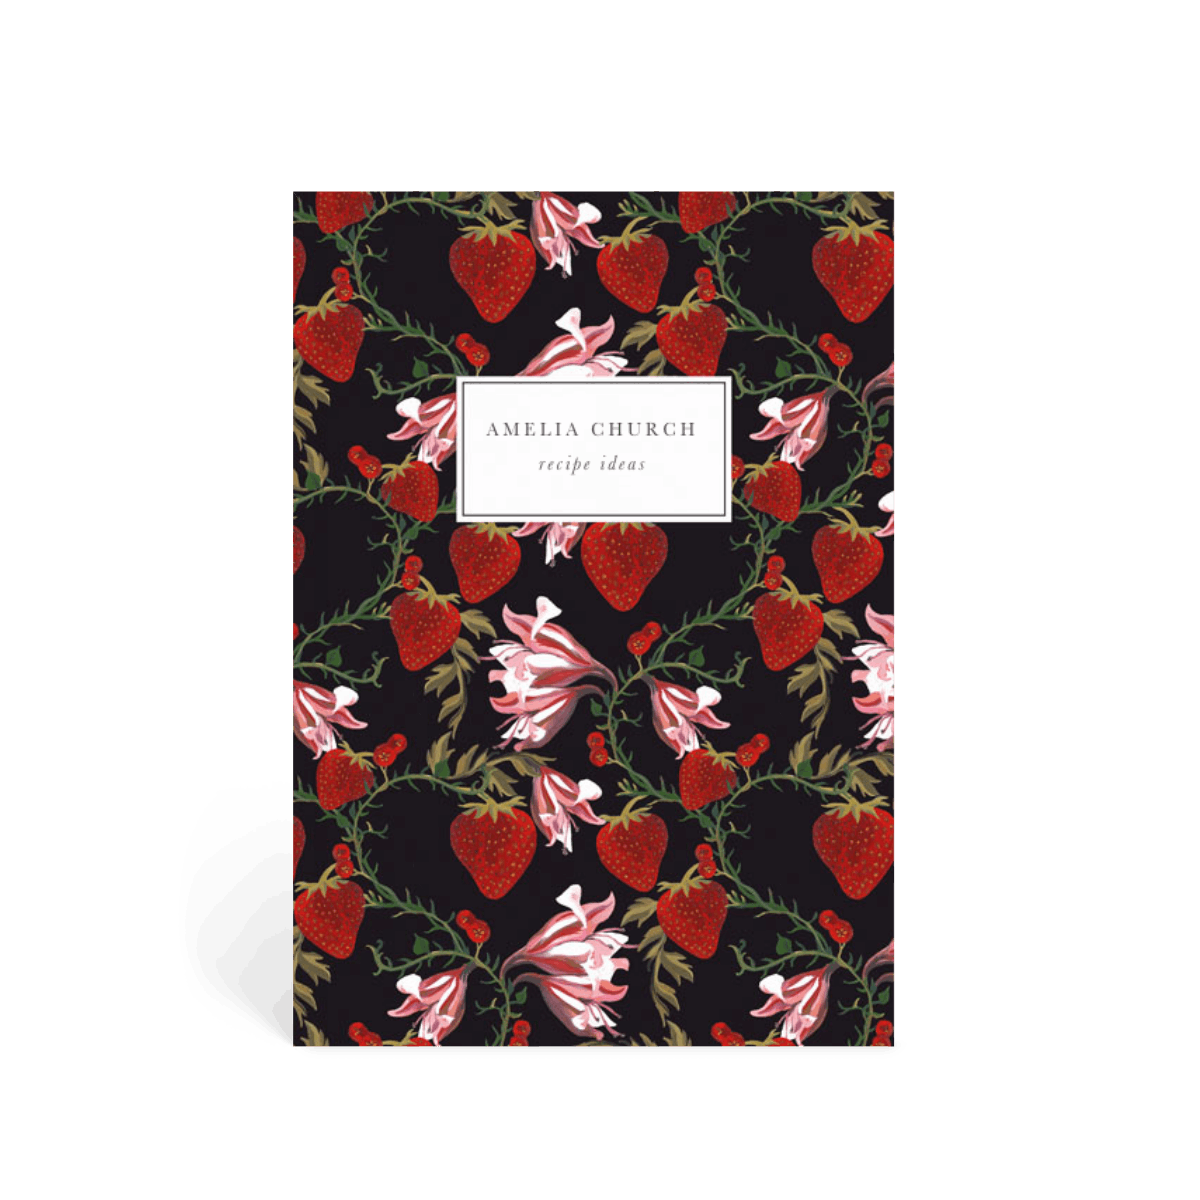 Https%3a%2f%2fwww.papier.com%2fproduct image%2f55575%2f25%2fstrawberry floral 13348 front 1542299593.png?ixlib=rb 1.1